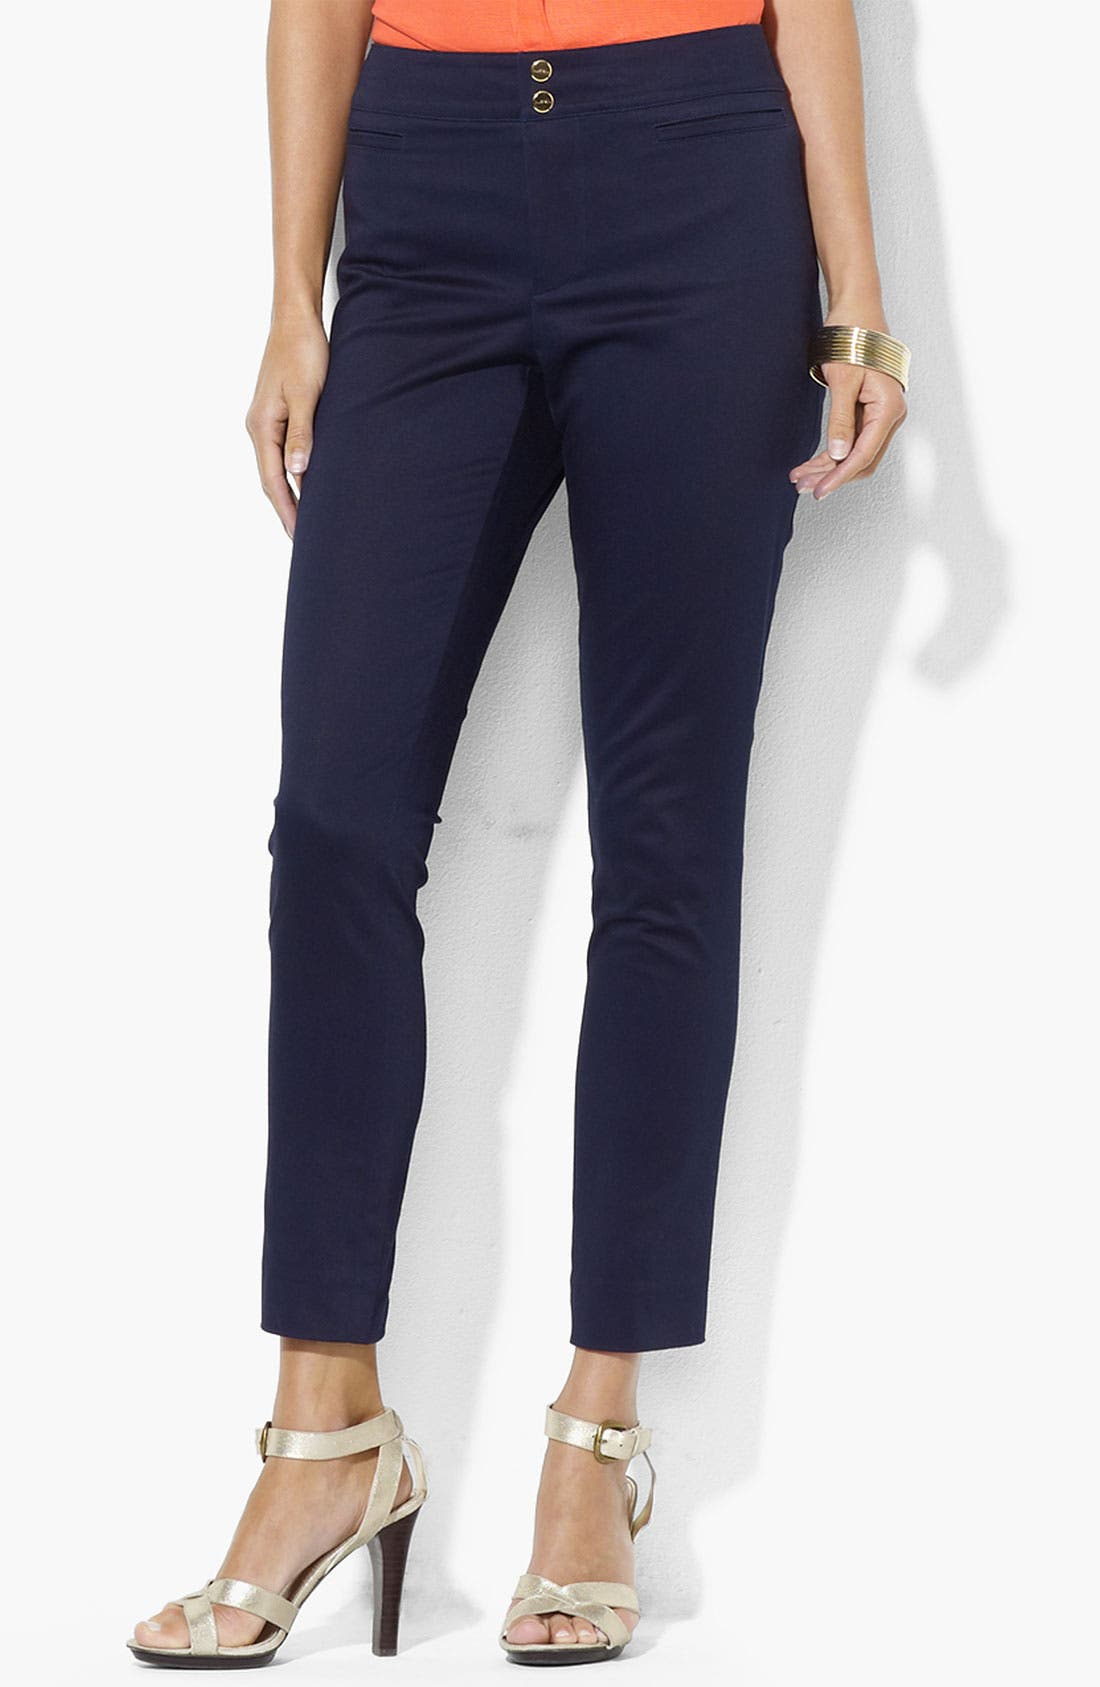 Alternate Image 1 Selected - Lauren Ralph Lauren Slim Stretch Cotton Pants (Petite) (Online Exclusive)